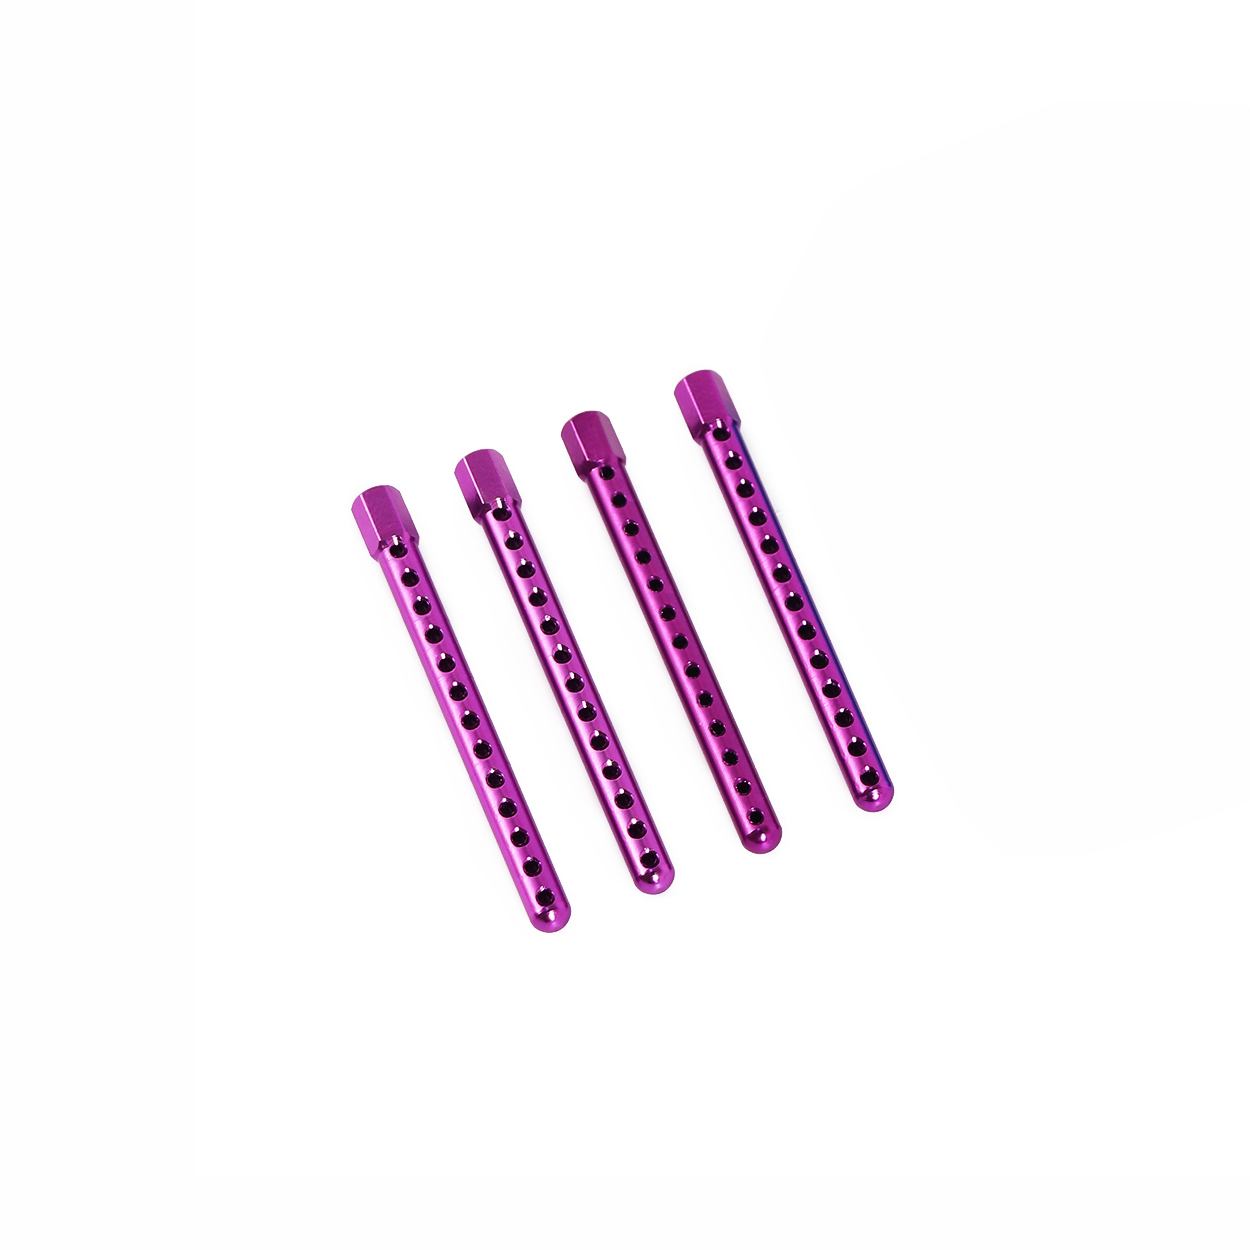 Aluminum Aolly Car Shell Column Body Mounts 122037 02010 HSP 1:10 Upgrade Parts For 94102 94122 94123 purple